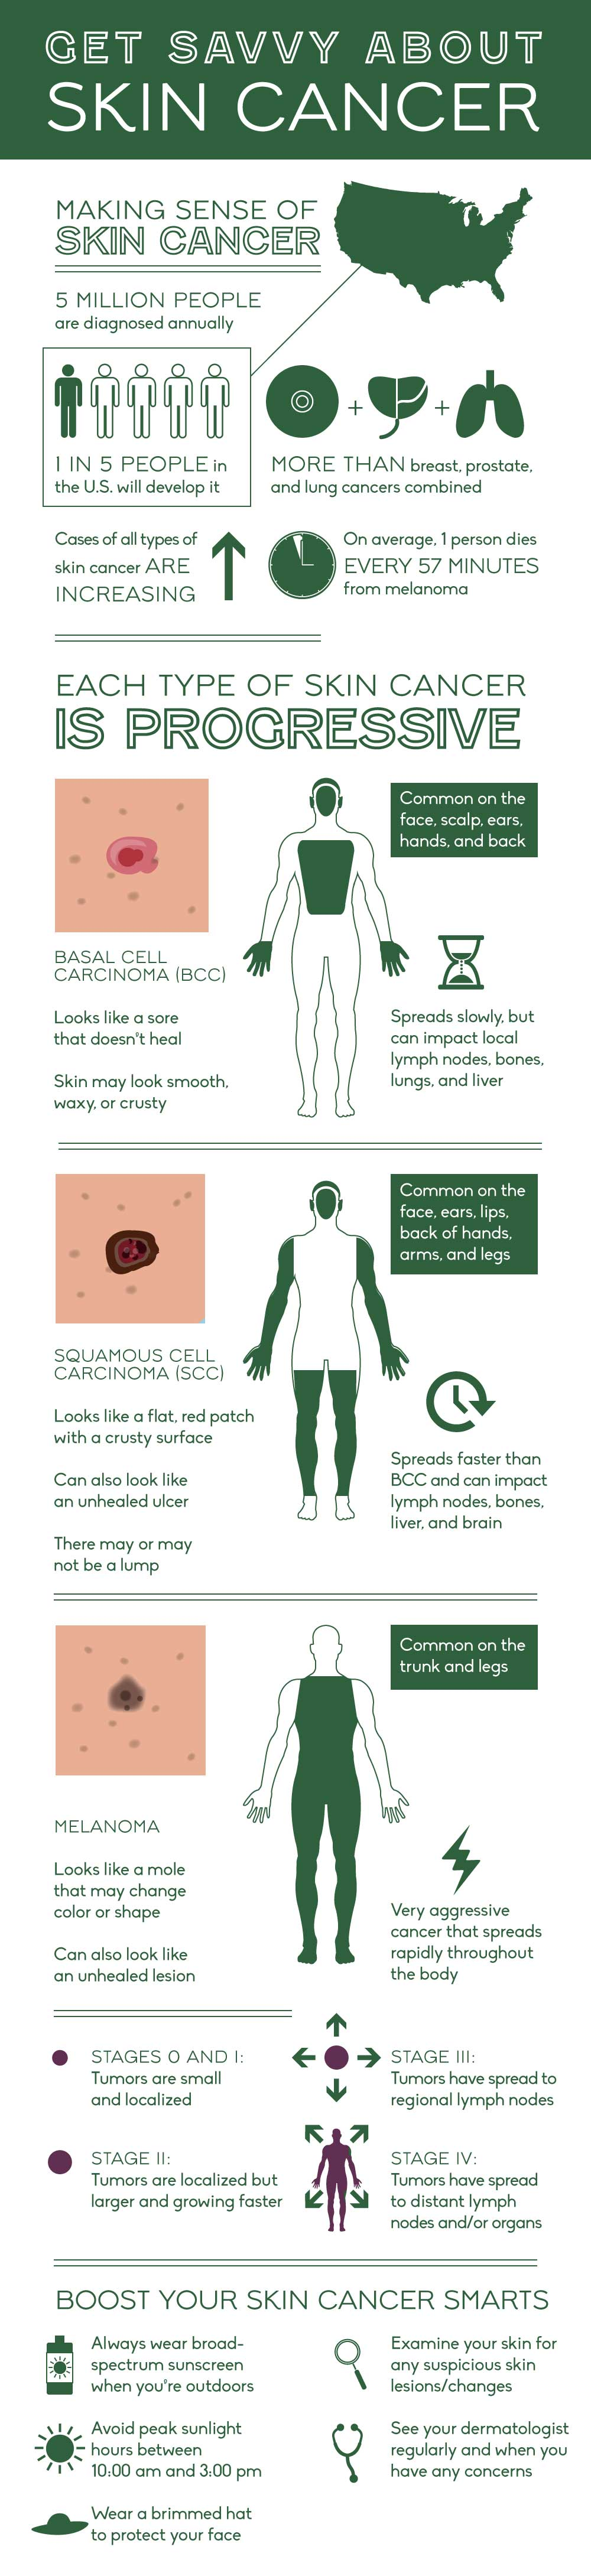 treatment-triggers-How-to-detect-skin-cancer-on-your-skin-Full-body-infographic